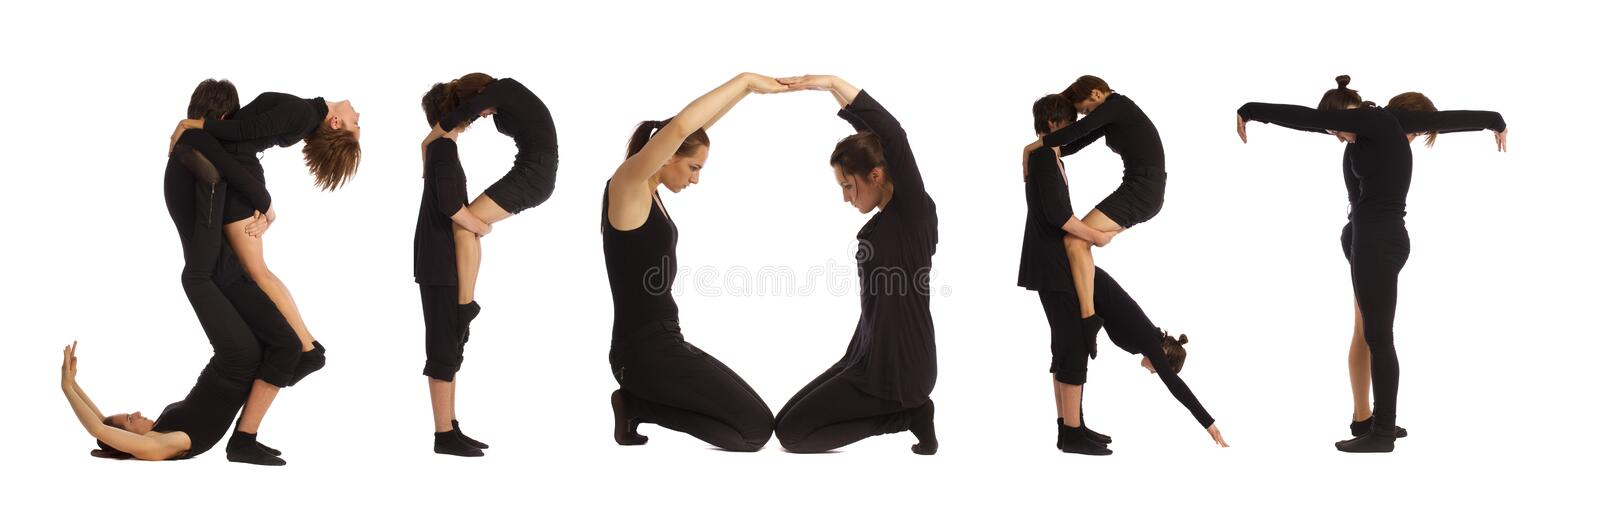 Download Black Dressed People Forming SPORT Word Stock Photo - Image of message, characters: 26080288